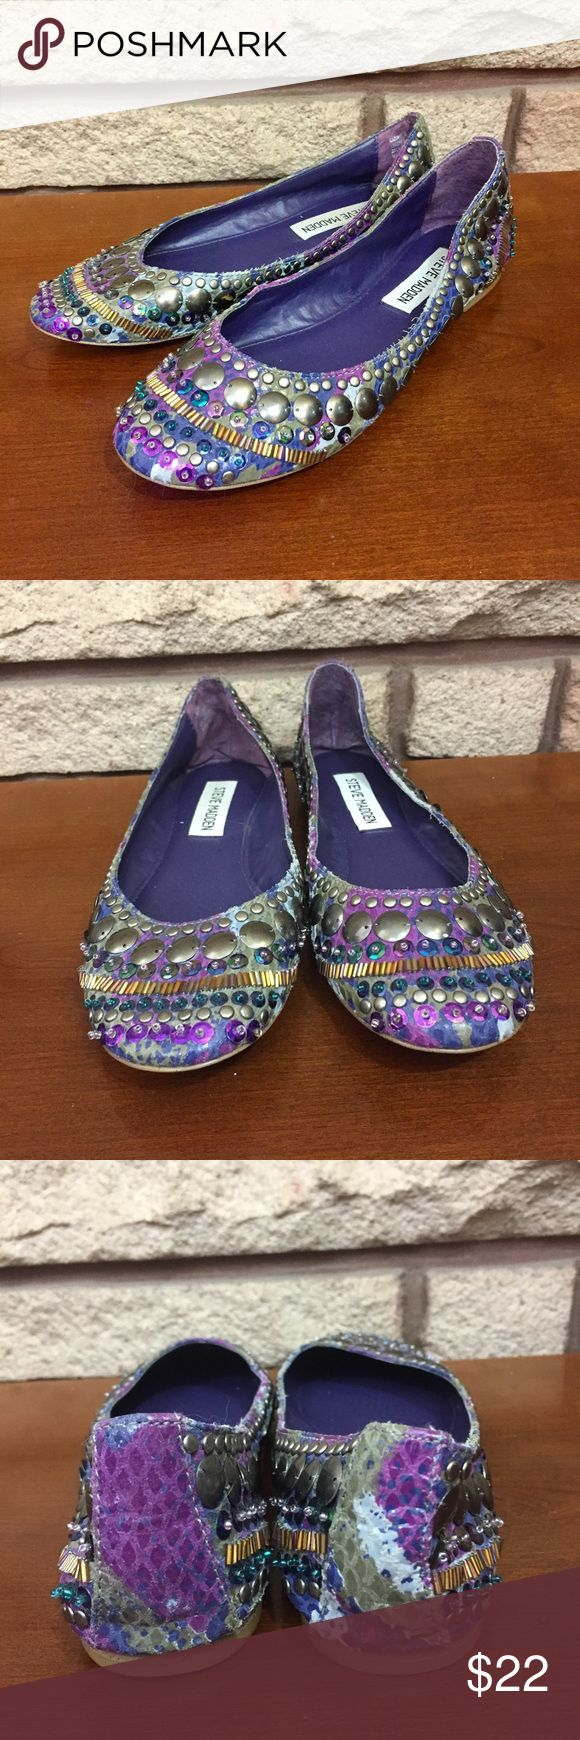 Steve Madden Bejeweled Flats Super cute and in great shape. The beading is so gorgeous and the bottoms are showing a tad bit of wear (pictured). Steve Madden Shoes Flats & Loafers